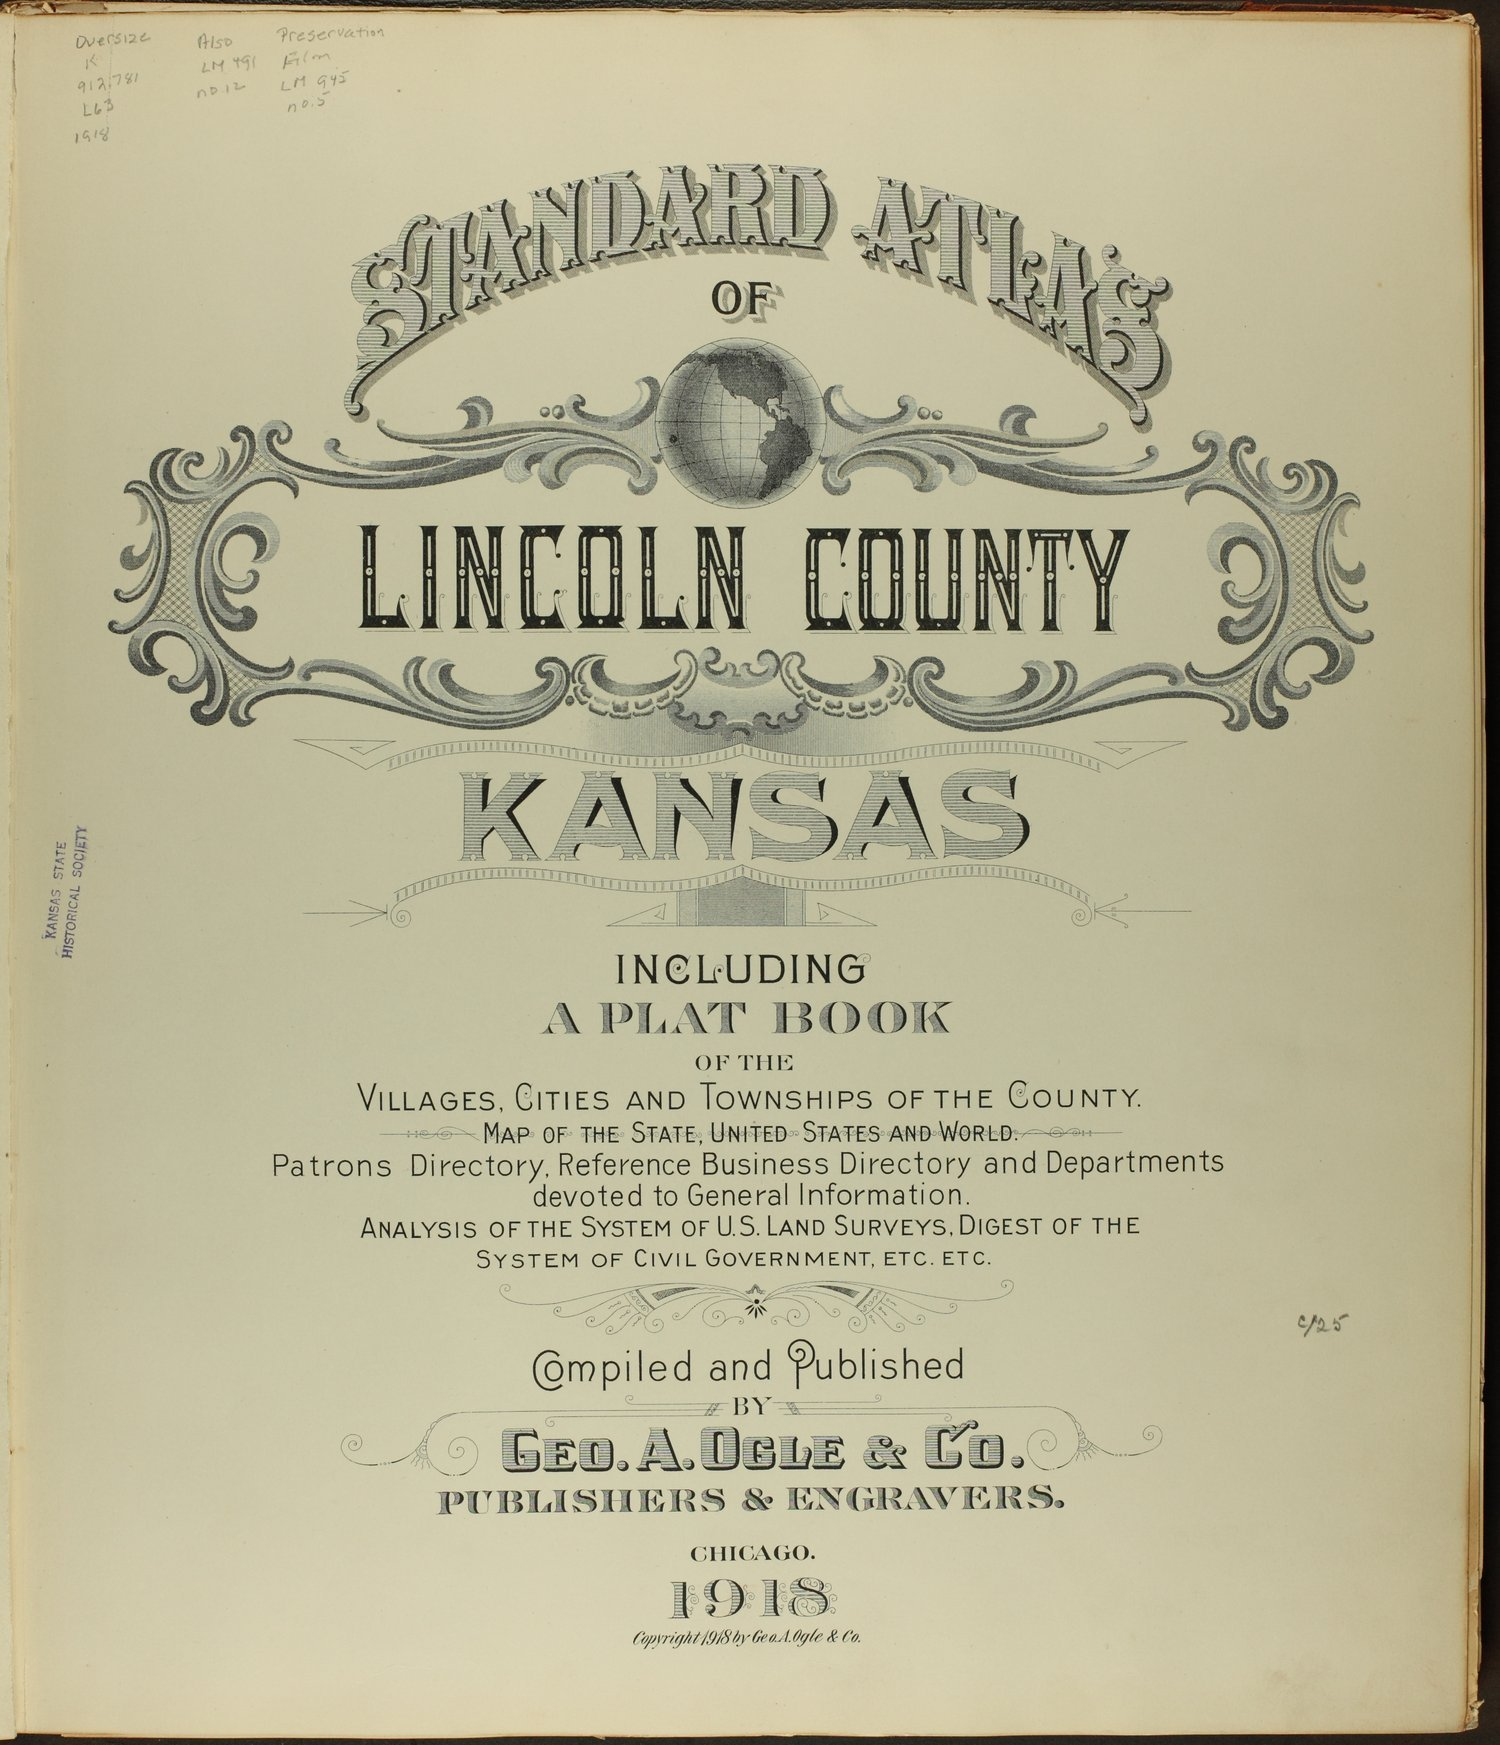 Standard atlas of Lincoln County, Kansas - Title Page